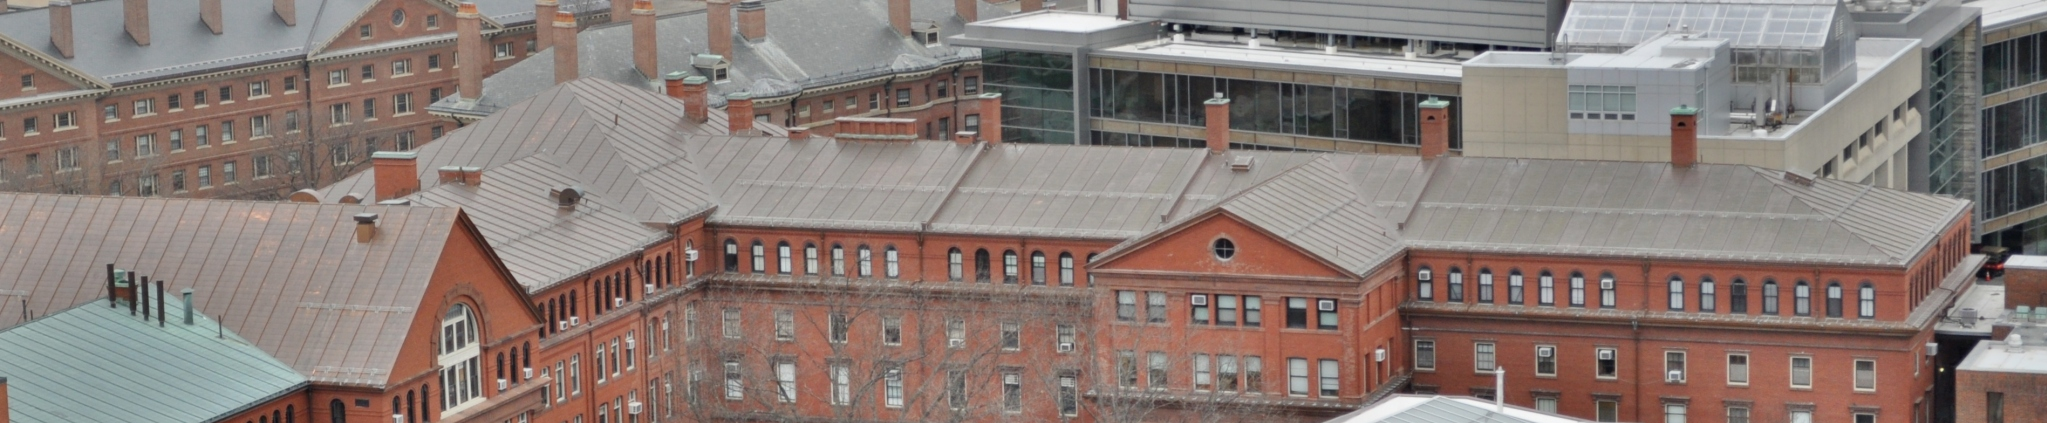 The museum roofing project was a massive undertaking, requiring the duplication of the existing copper roof—the bulk of which consisted of copper panels with vertical batten seams and horizontal flat seams.